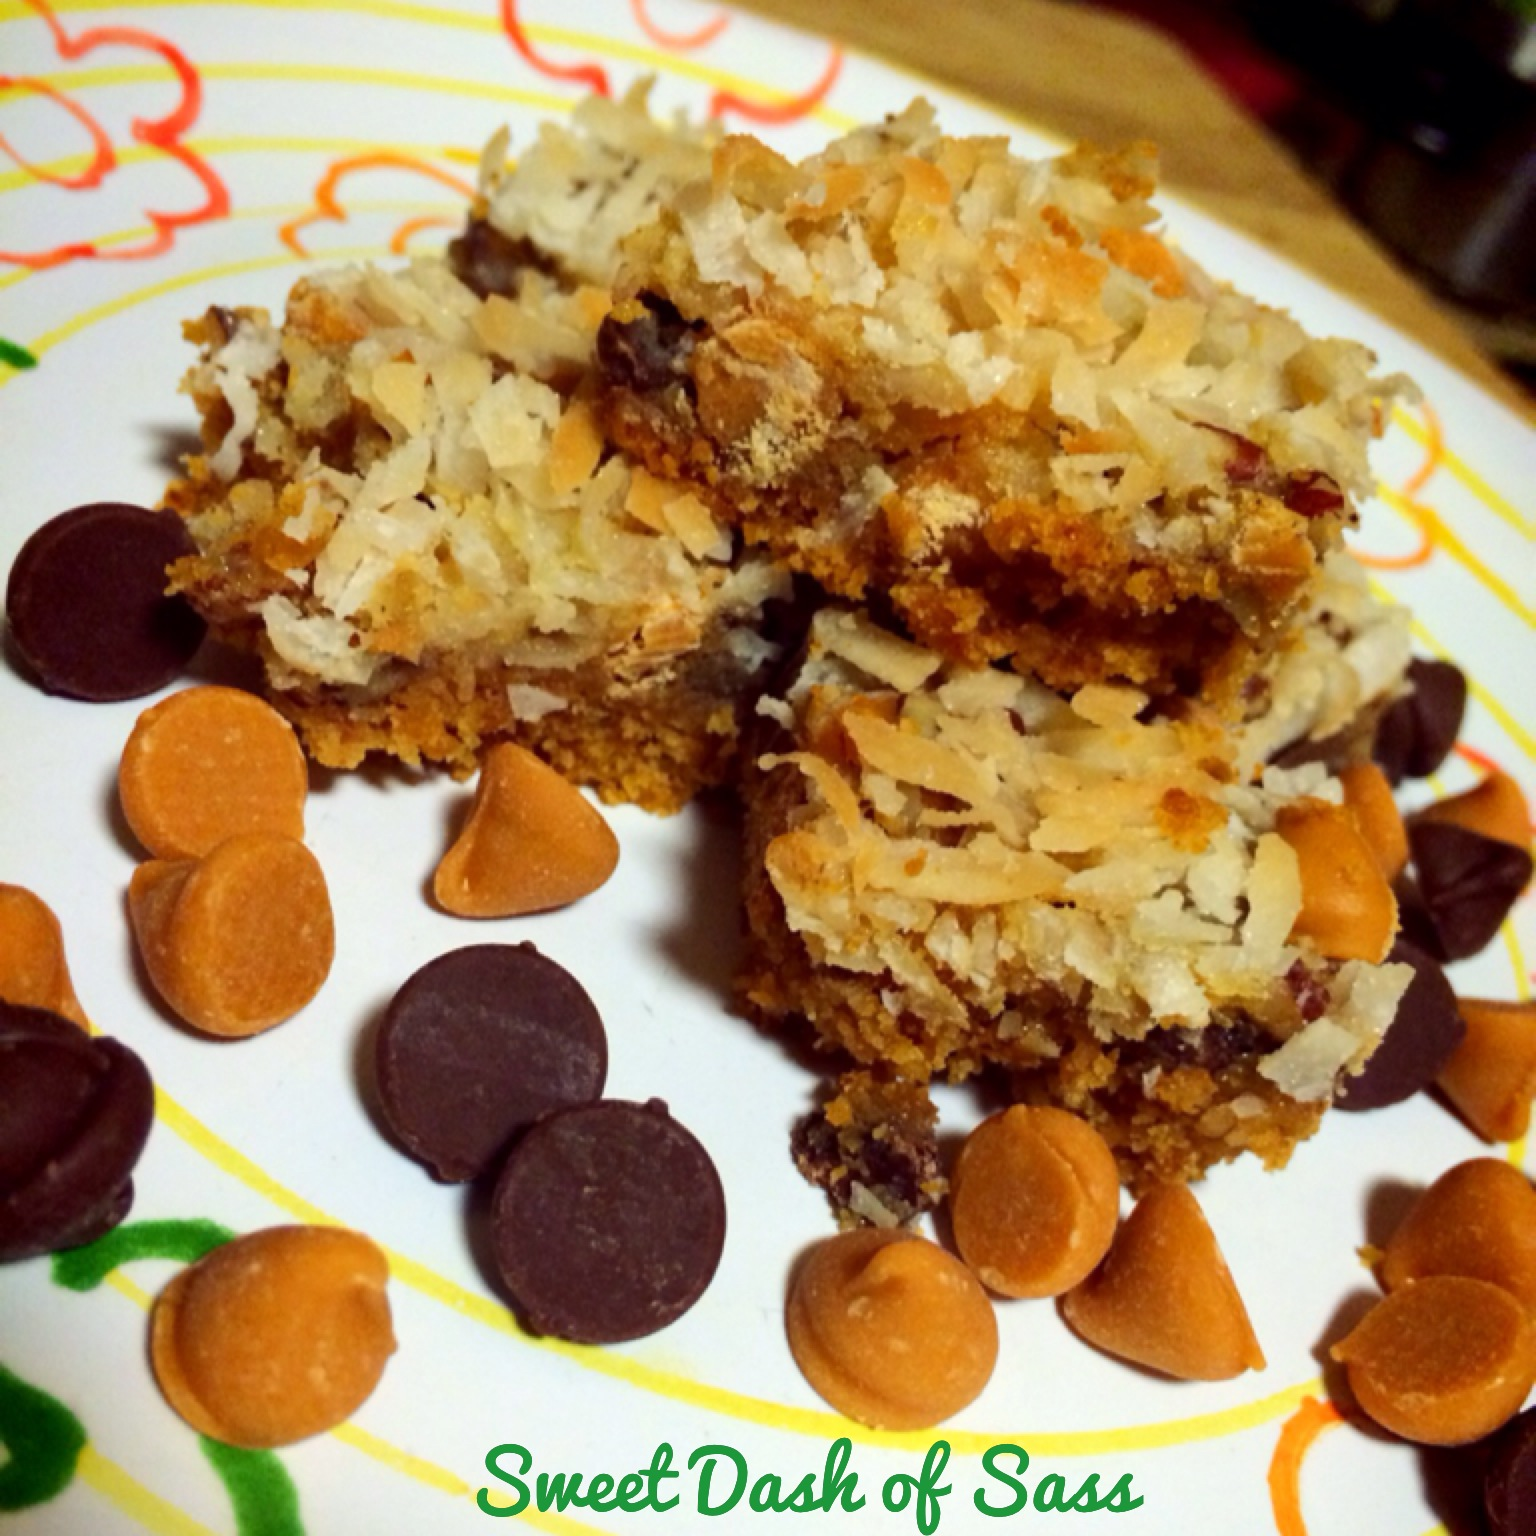 Magic Layer Bars - www.SweetDashofSass.com - 25 Days of Christmas, Cookie Style